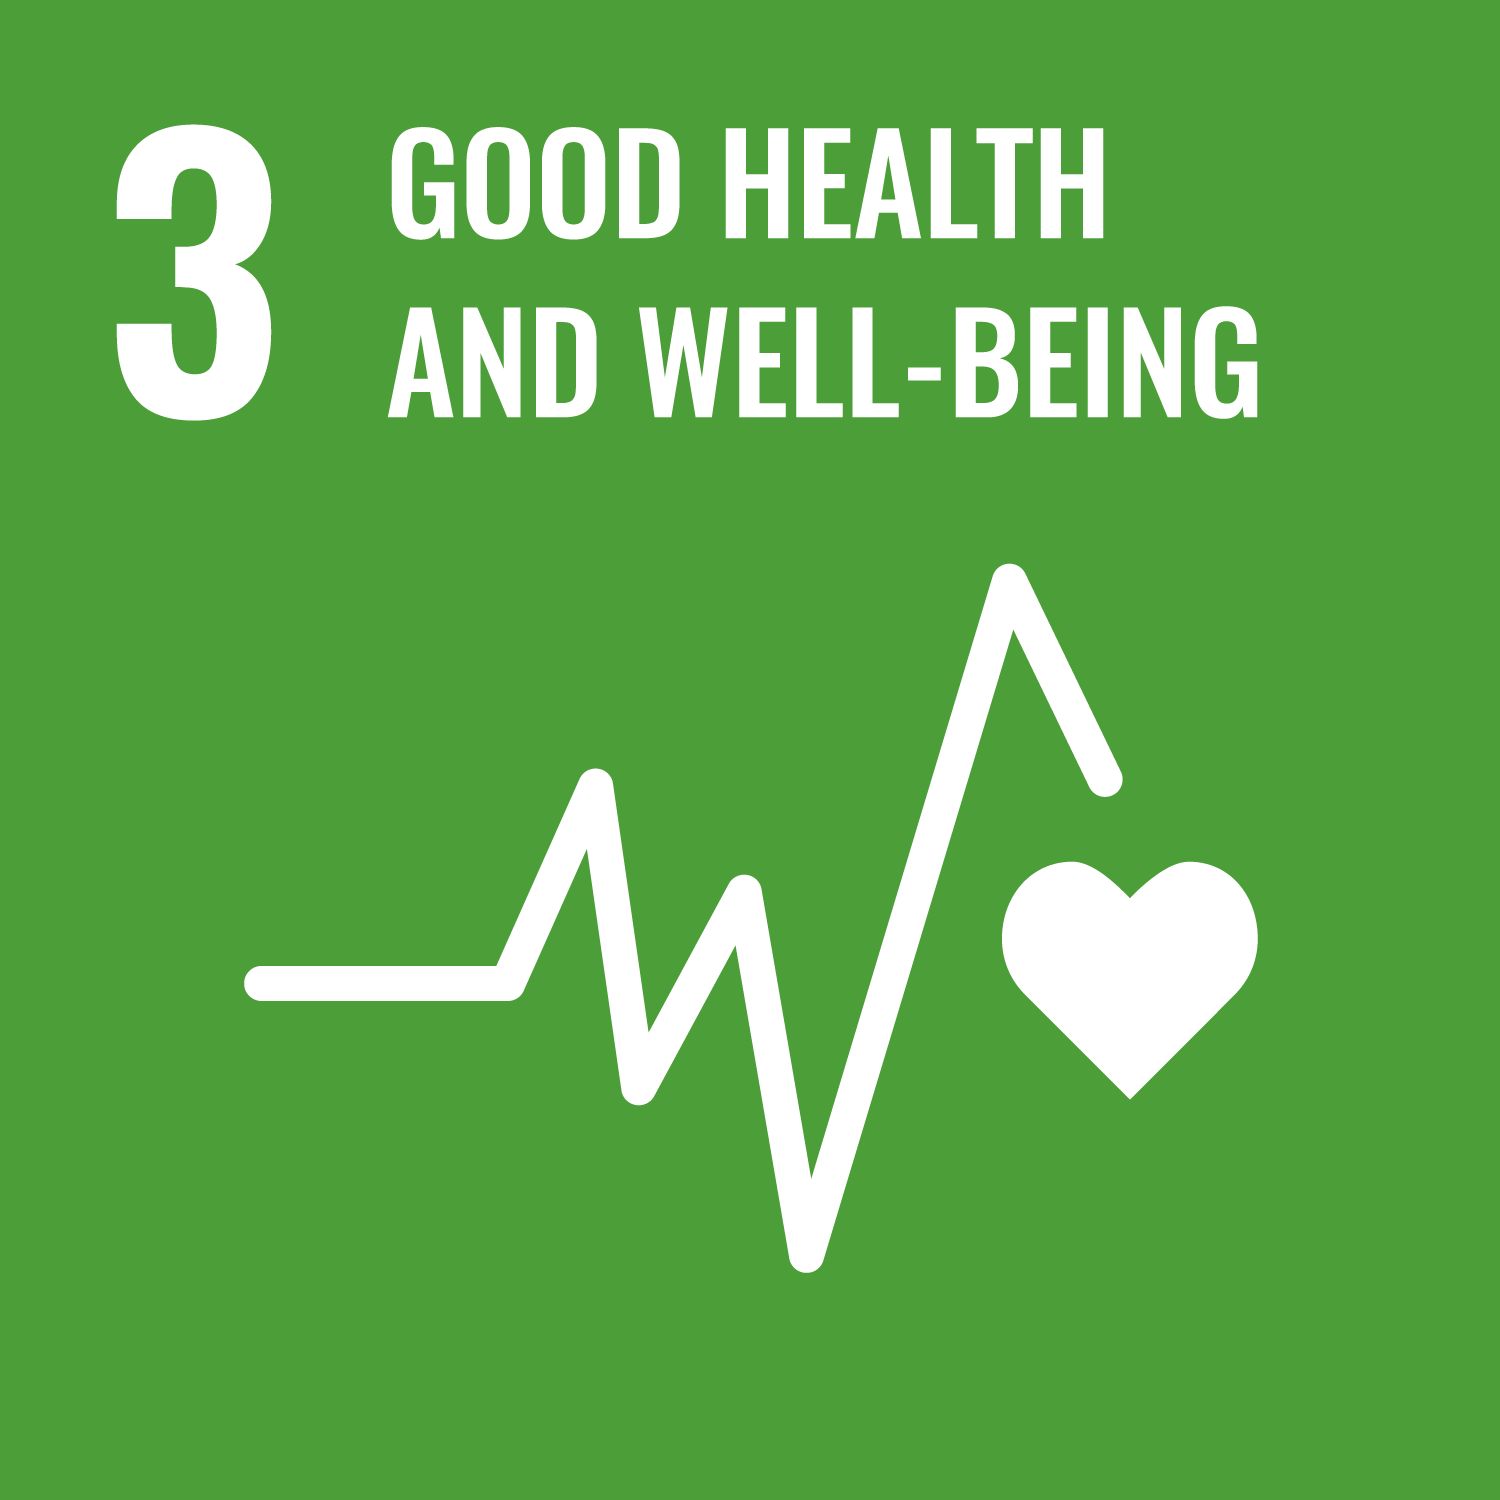 SDG #3 Good Health and Well Being